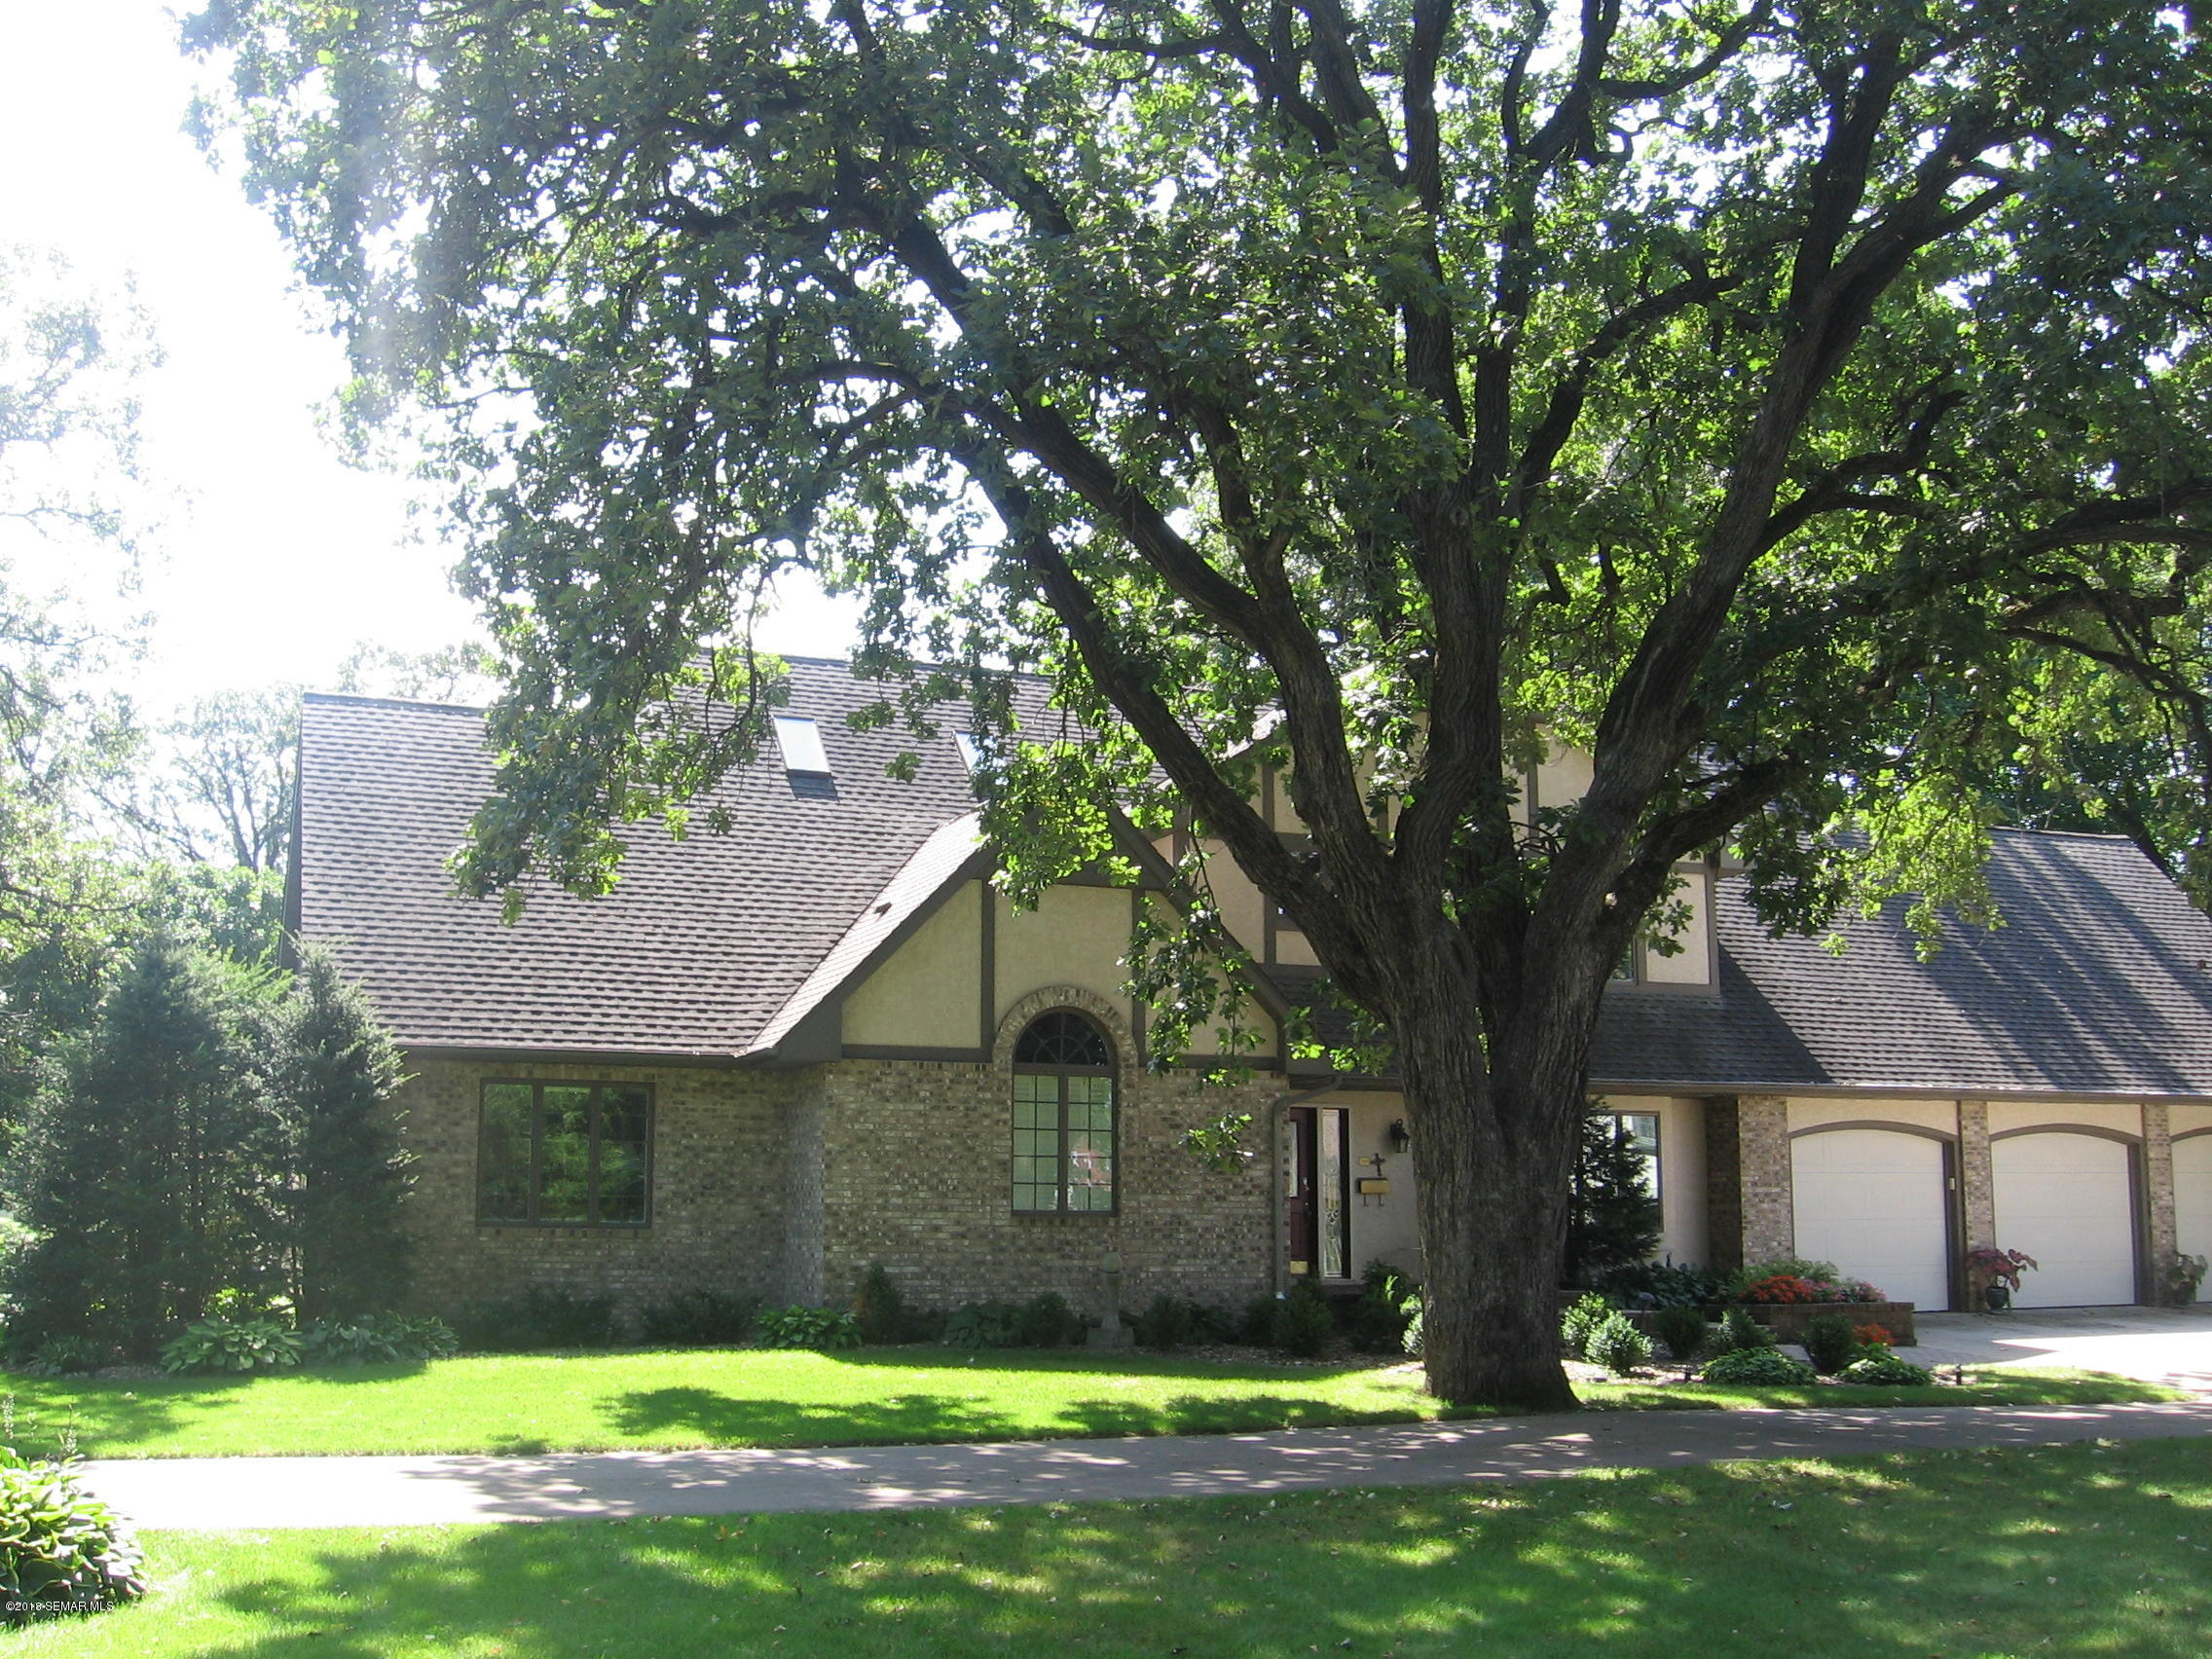 703 4th Street SW, Austin, Minnesota